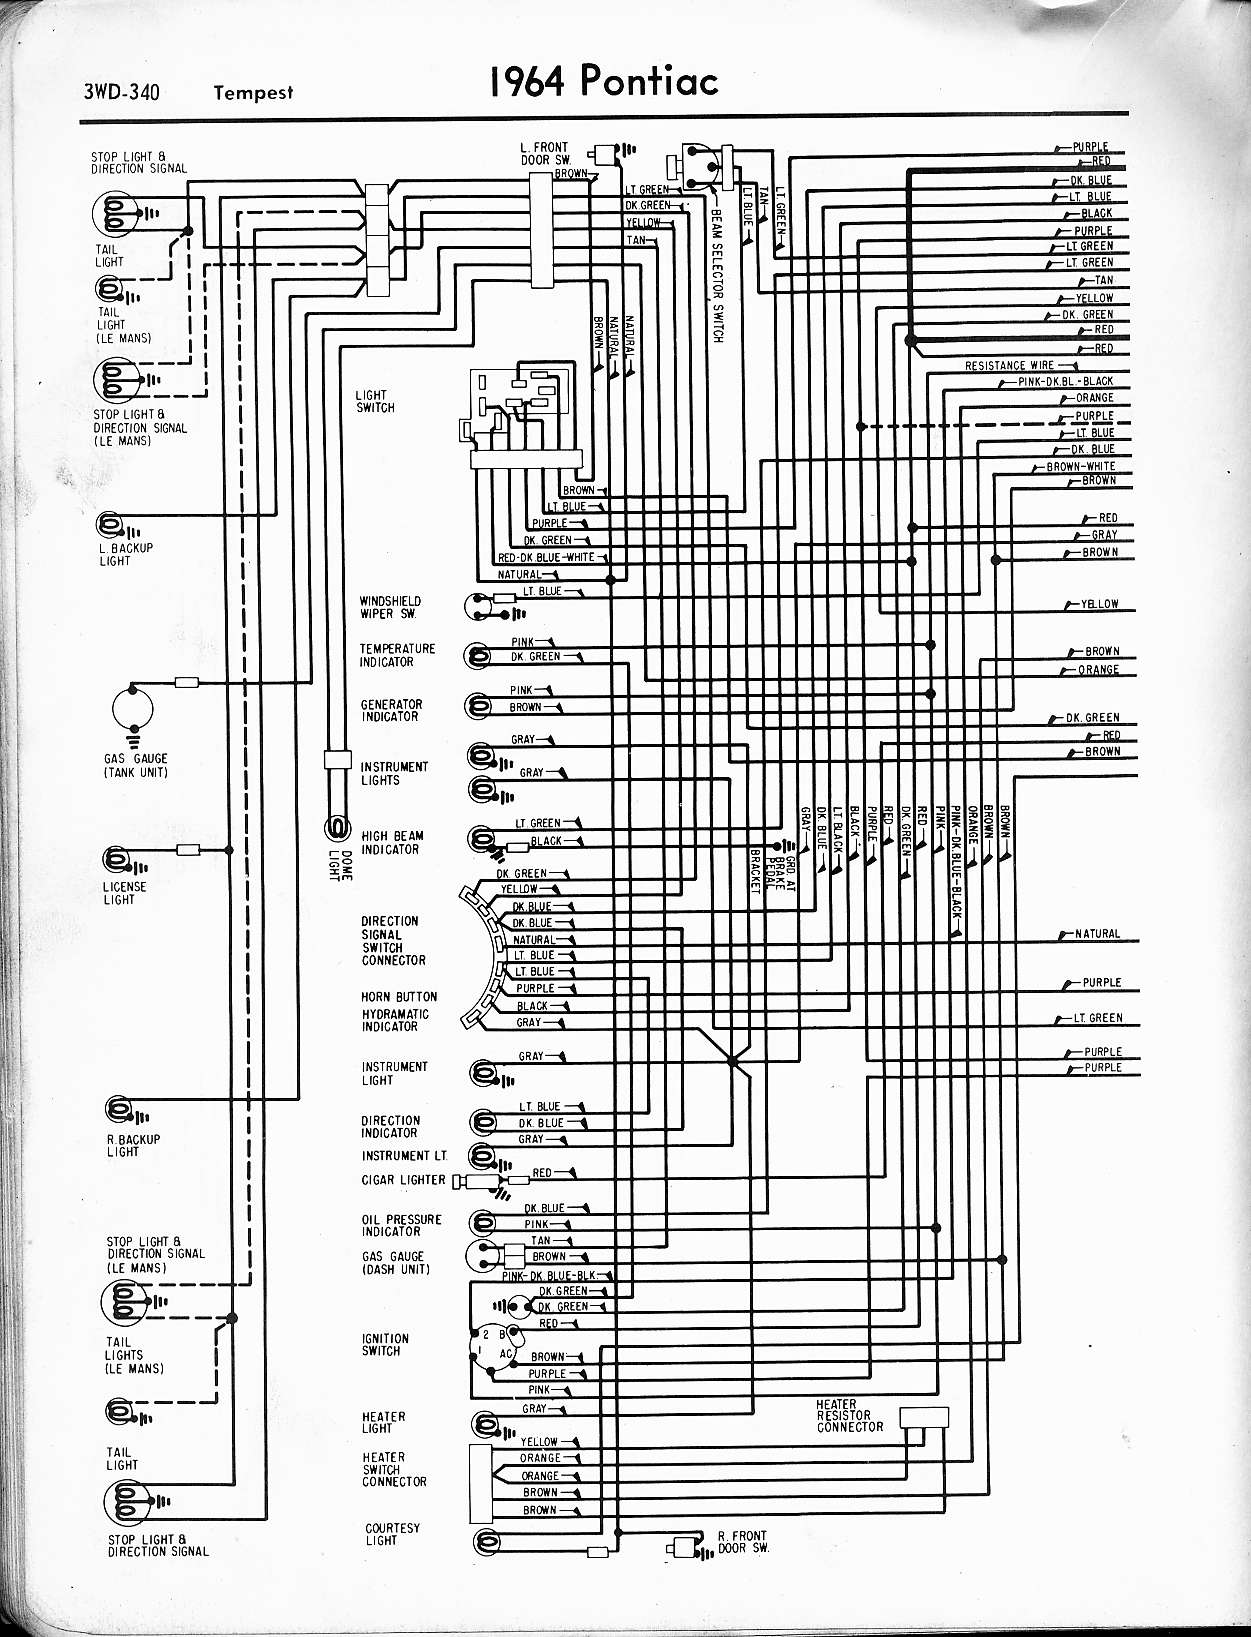 wallace racing wiring diagrams rh wallaceracing com  1965 pontiac bonneville wiring diagram